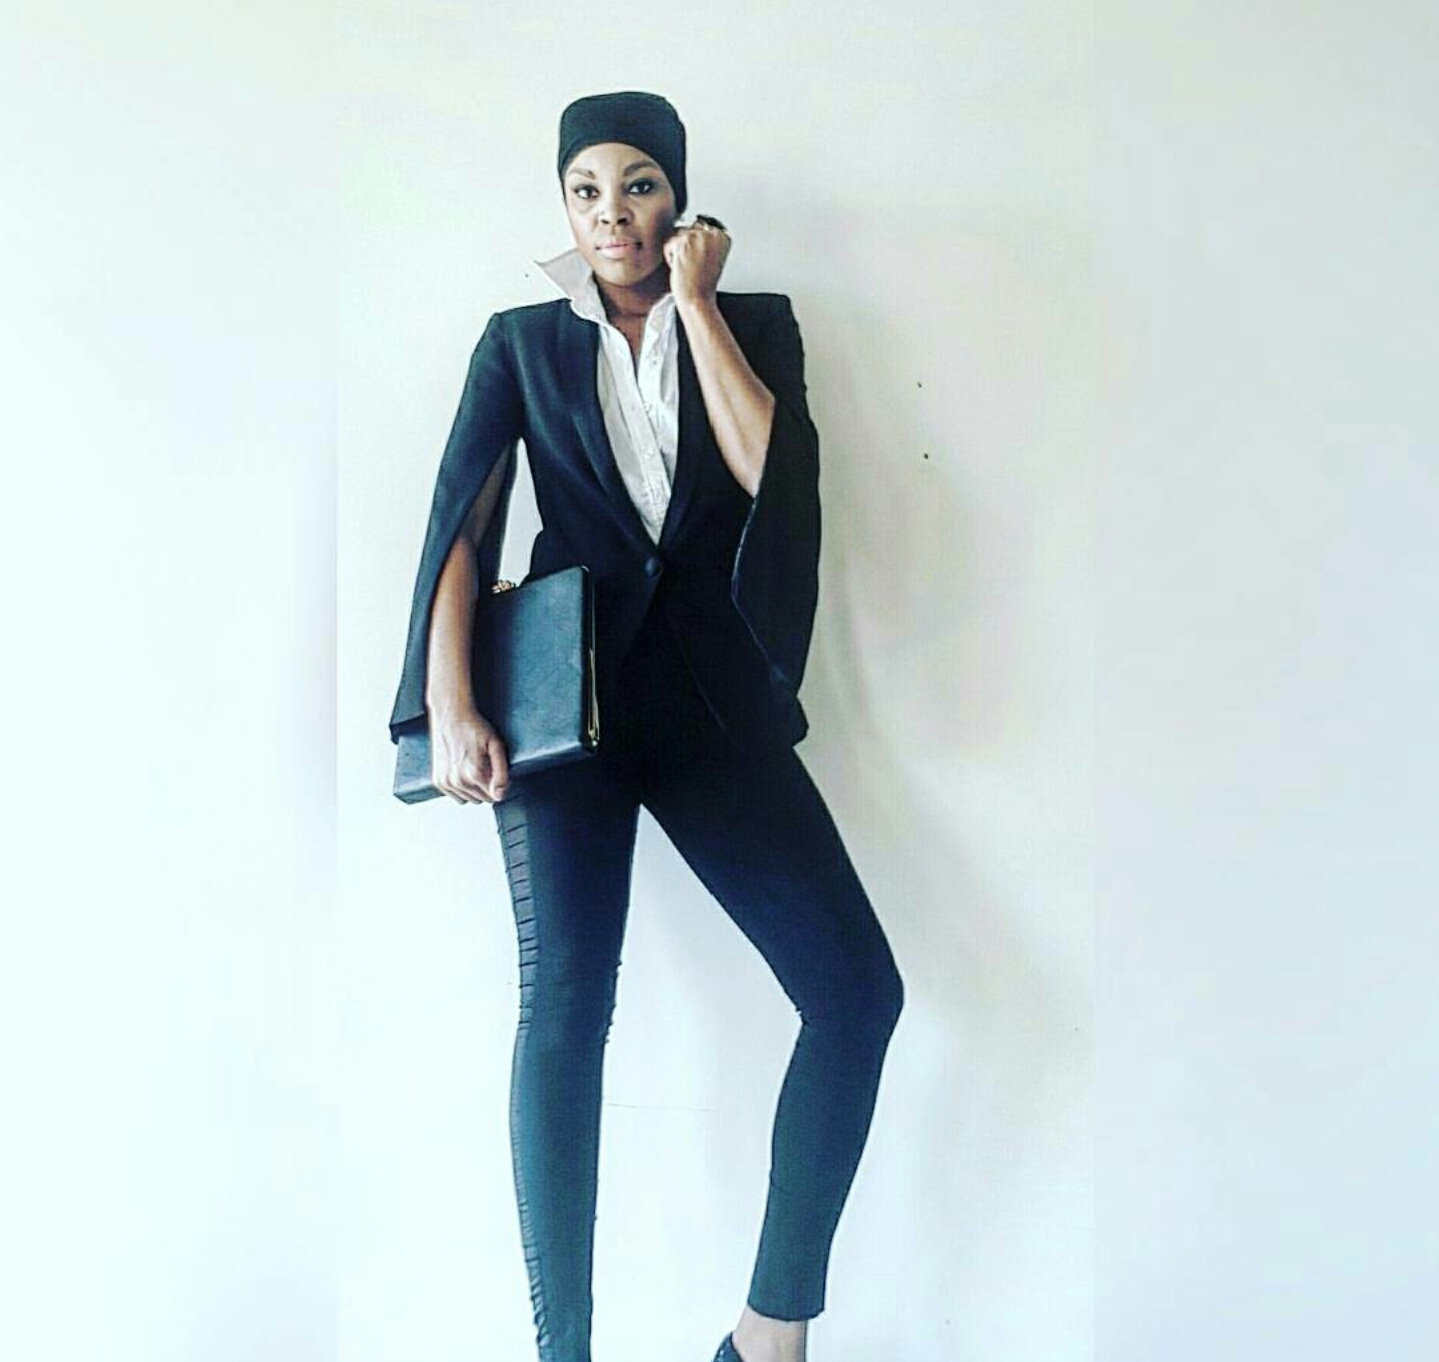 Want to know the secret behind the ensemble? Get the full dish on Instagram, fb or Twitter: @tonibrooksStyle